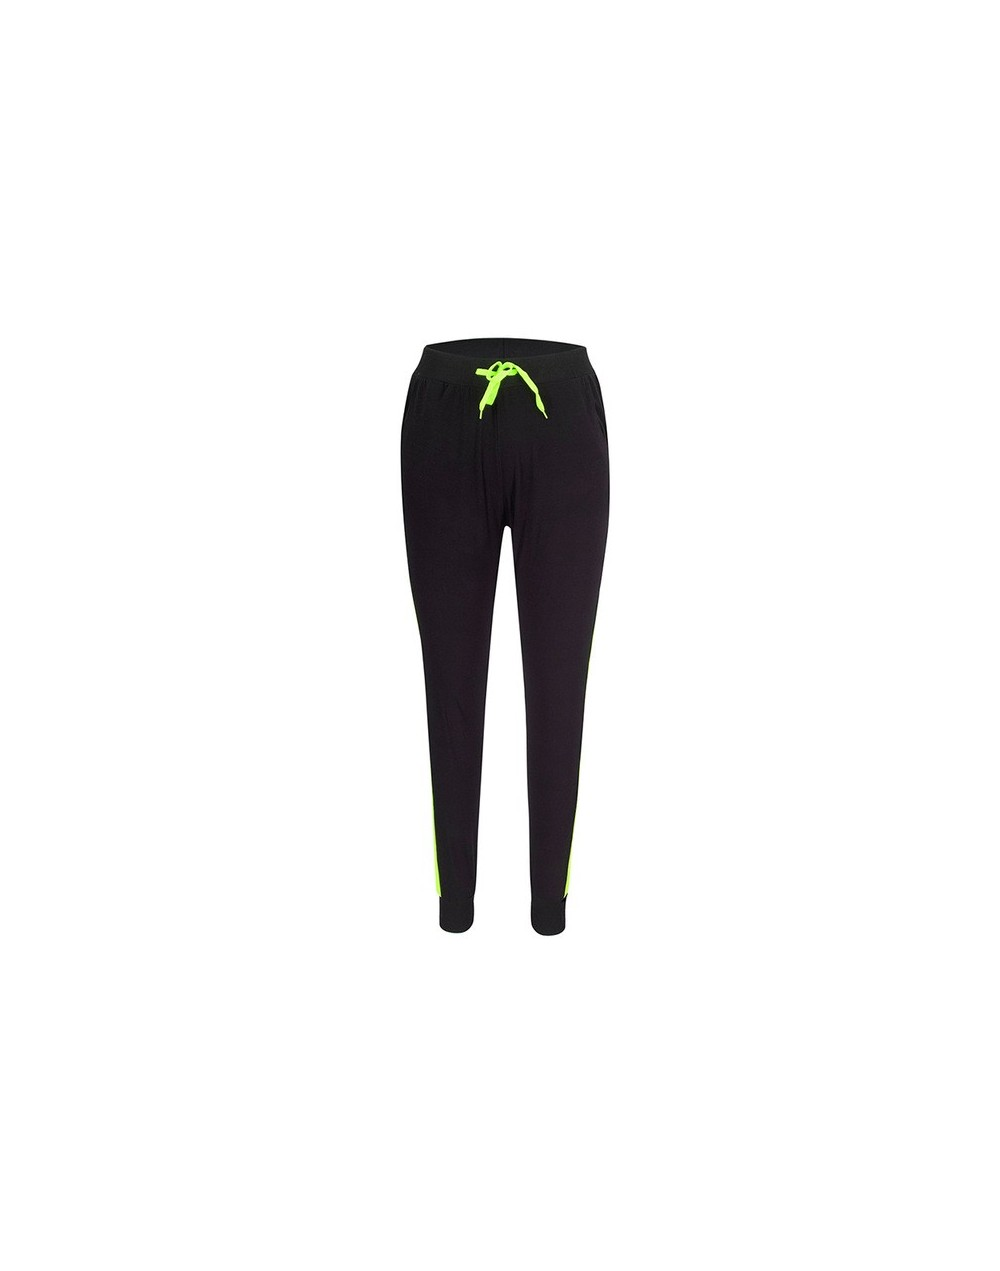 2019 Women Casual Trousers Exercise Lines Pants Dance Female Side Lines Sweatpants Women Trousers Fitness Pants HB-MZC3266 -...